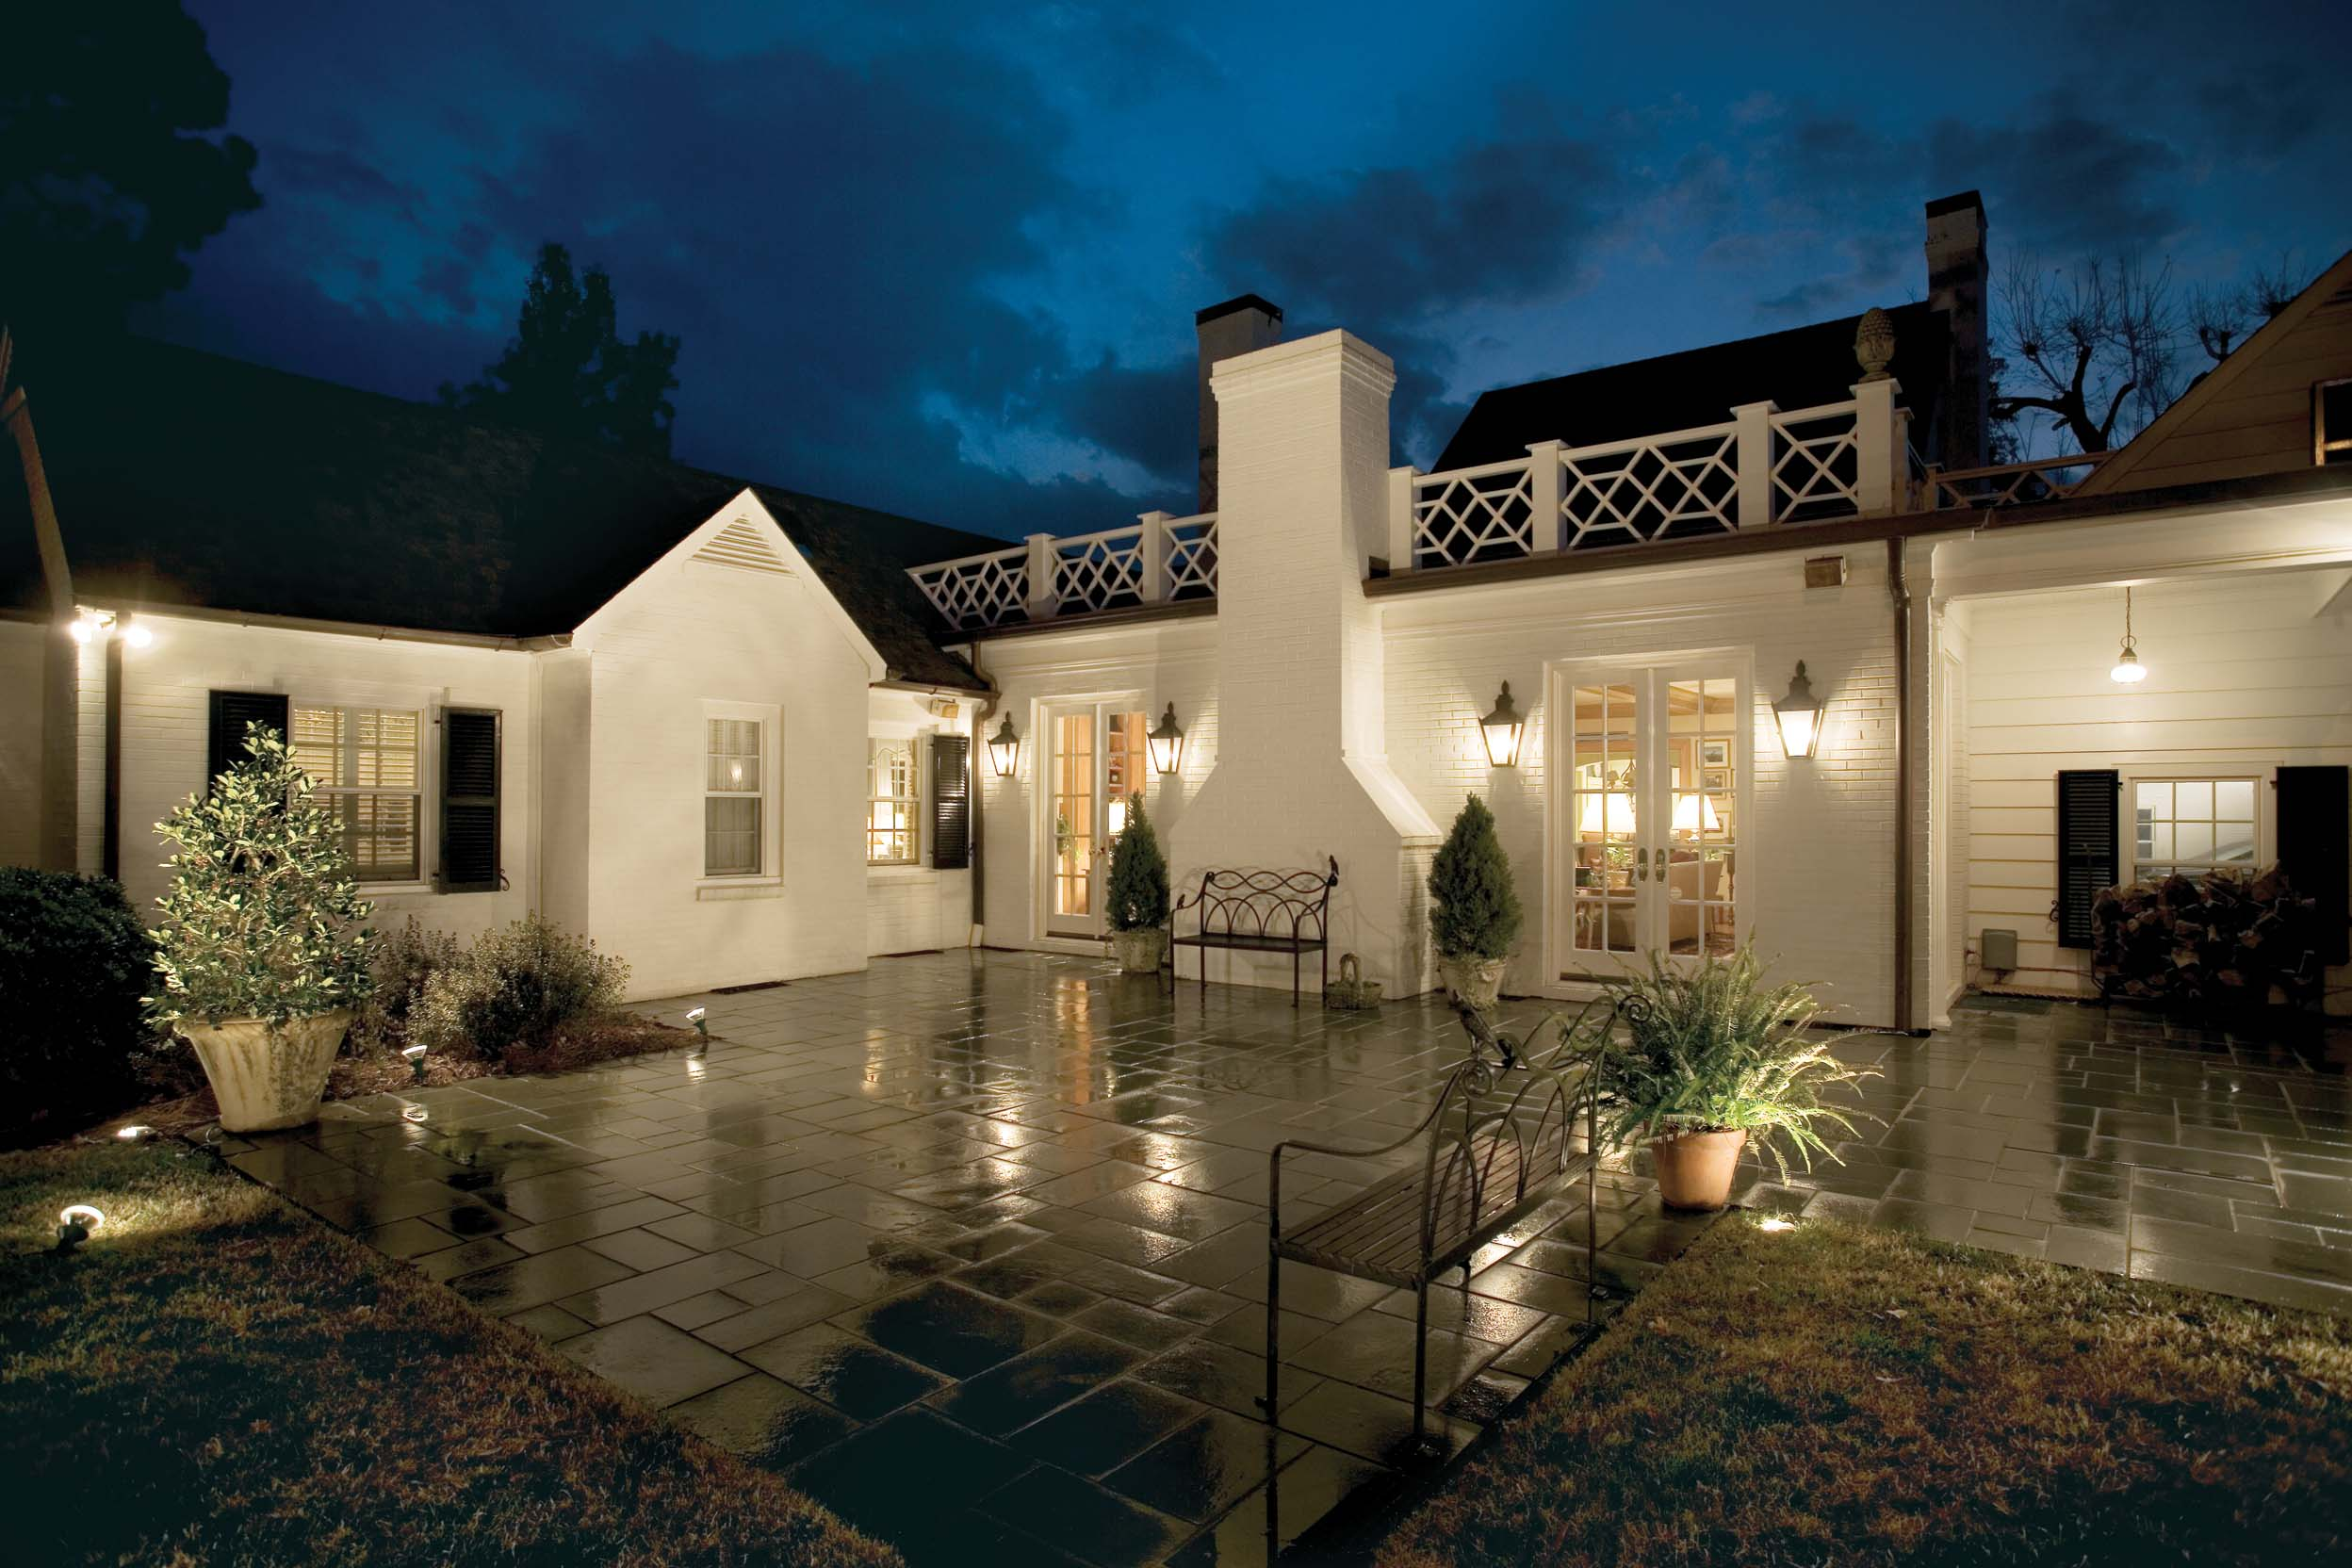 exterior lighting outdoor lighting adds safety and curb appeal. pazmmph